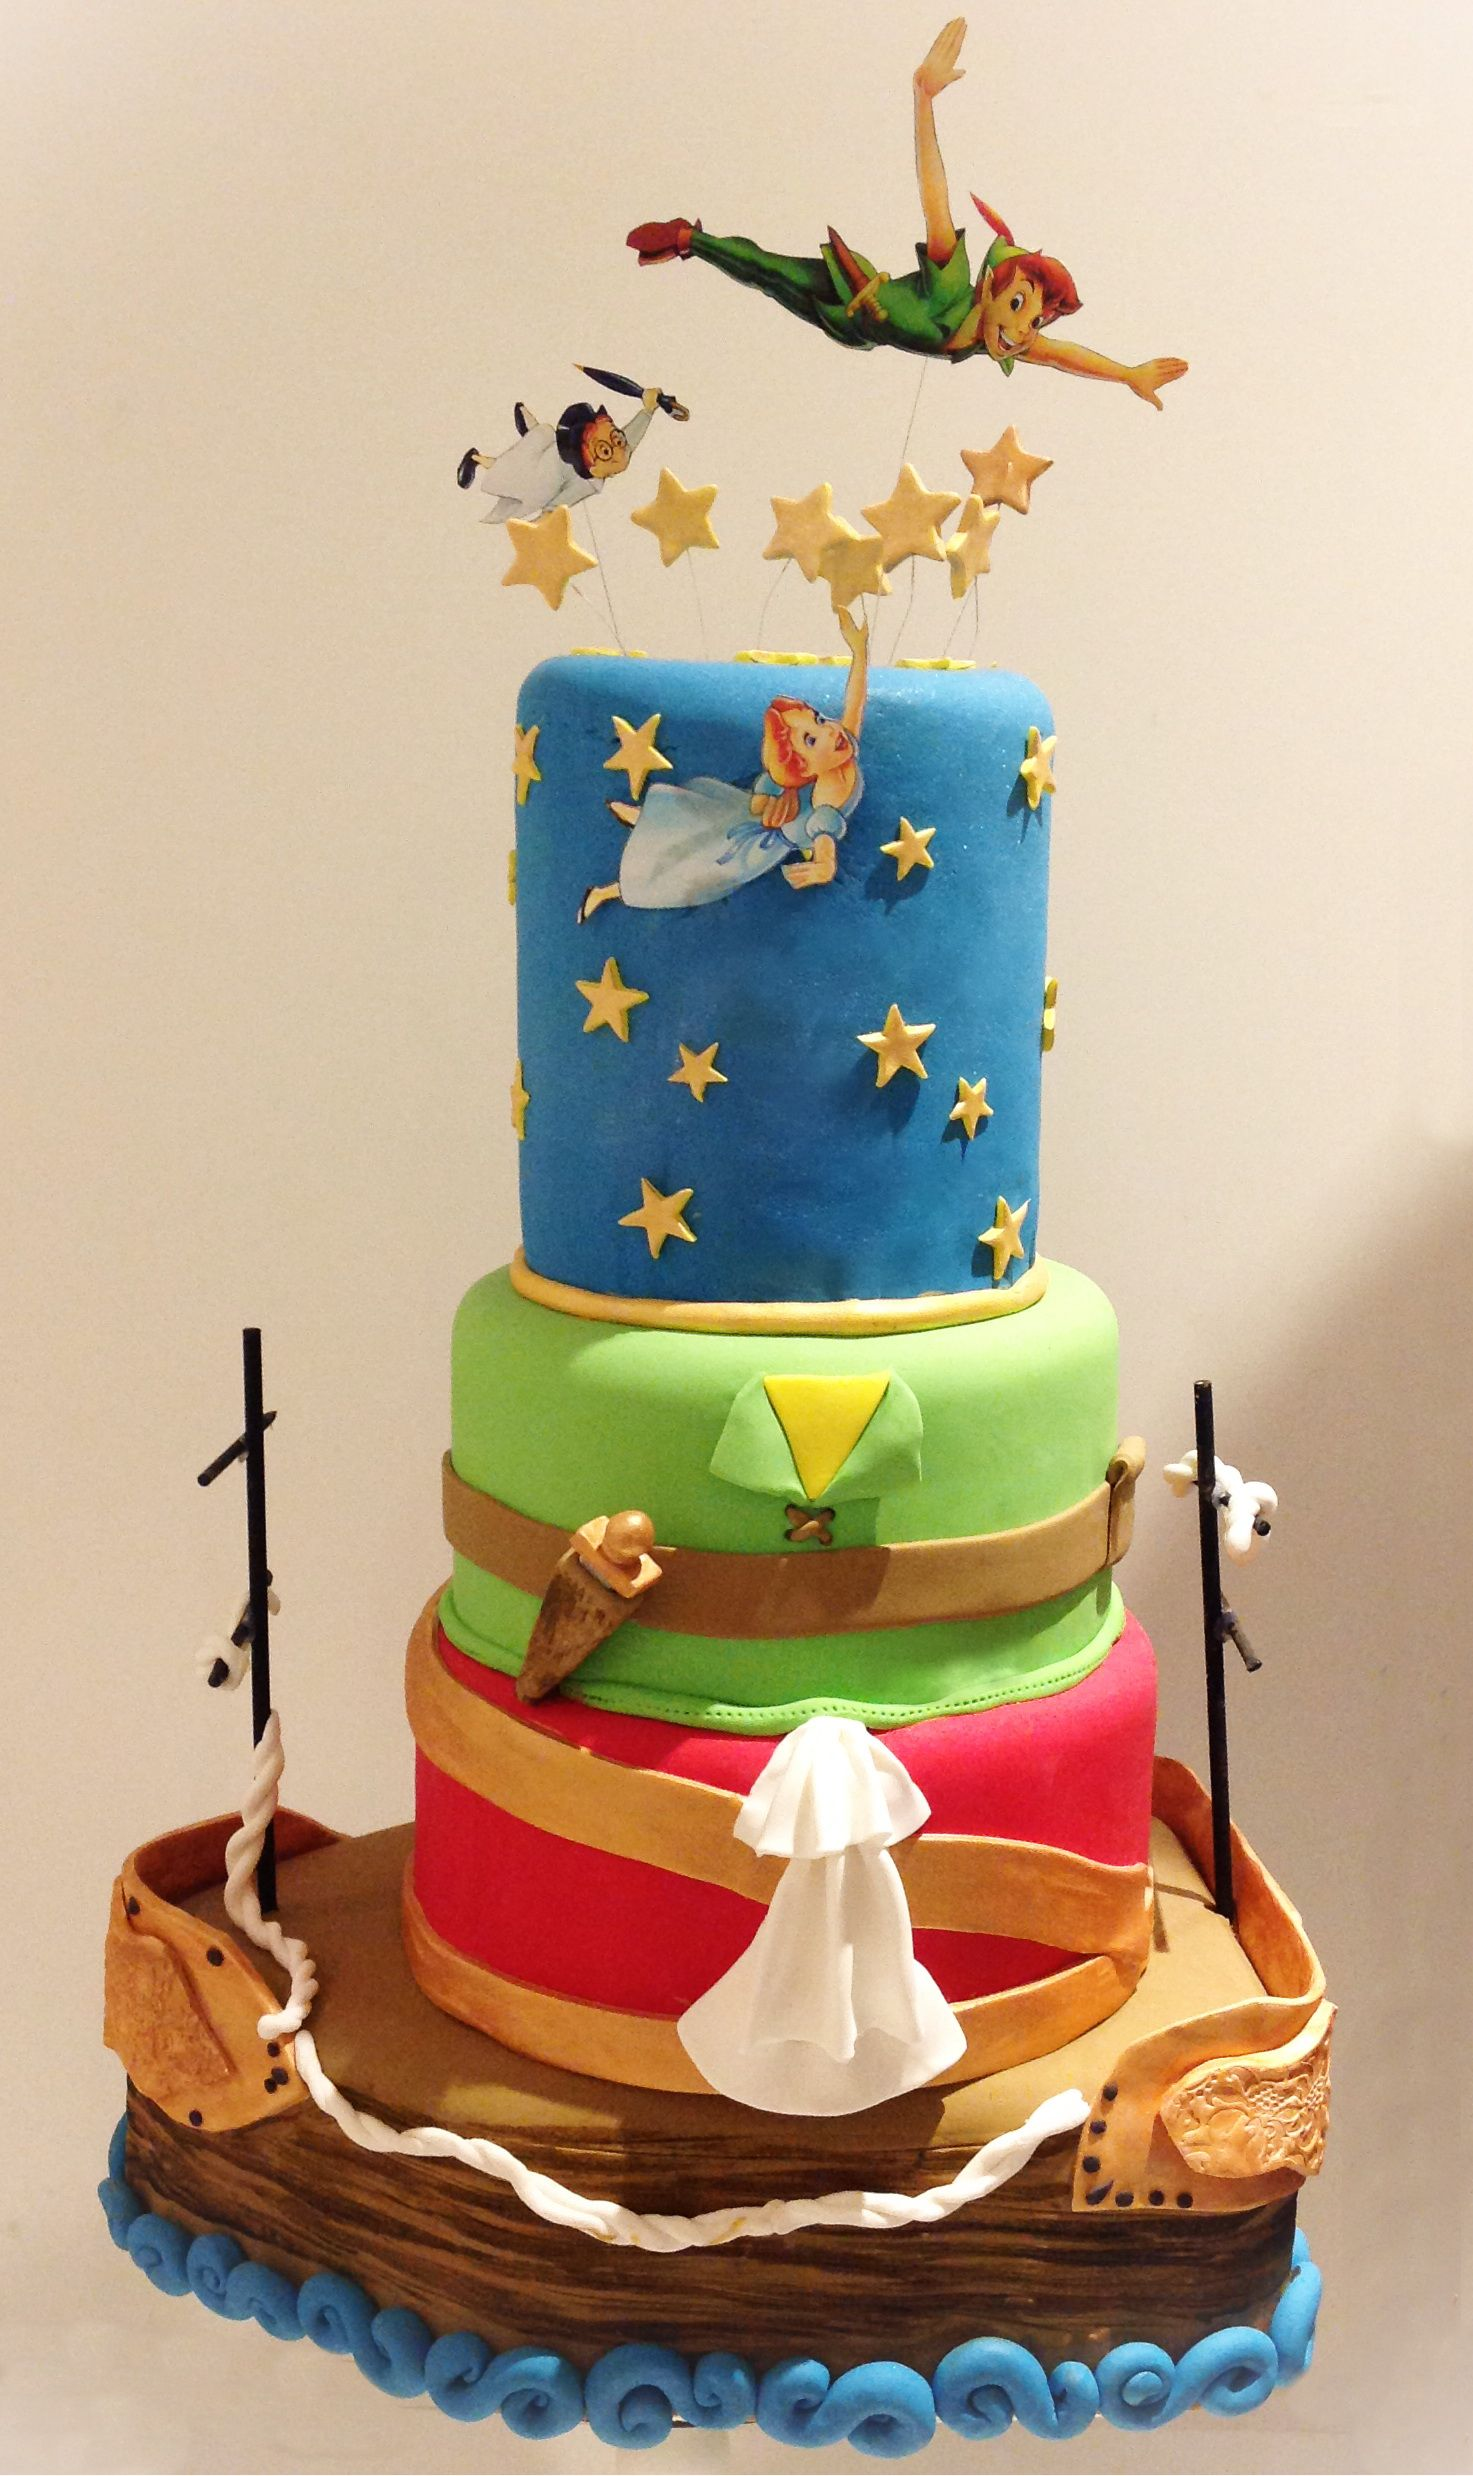 Peter Pan Birthday Cake Peter Pan Cakes Peter Pan Disney Peter